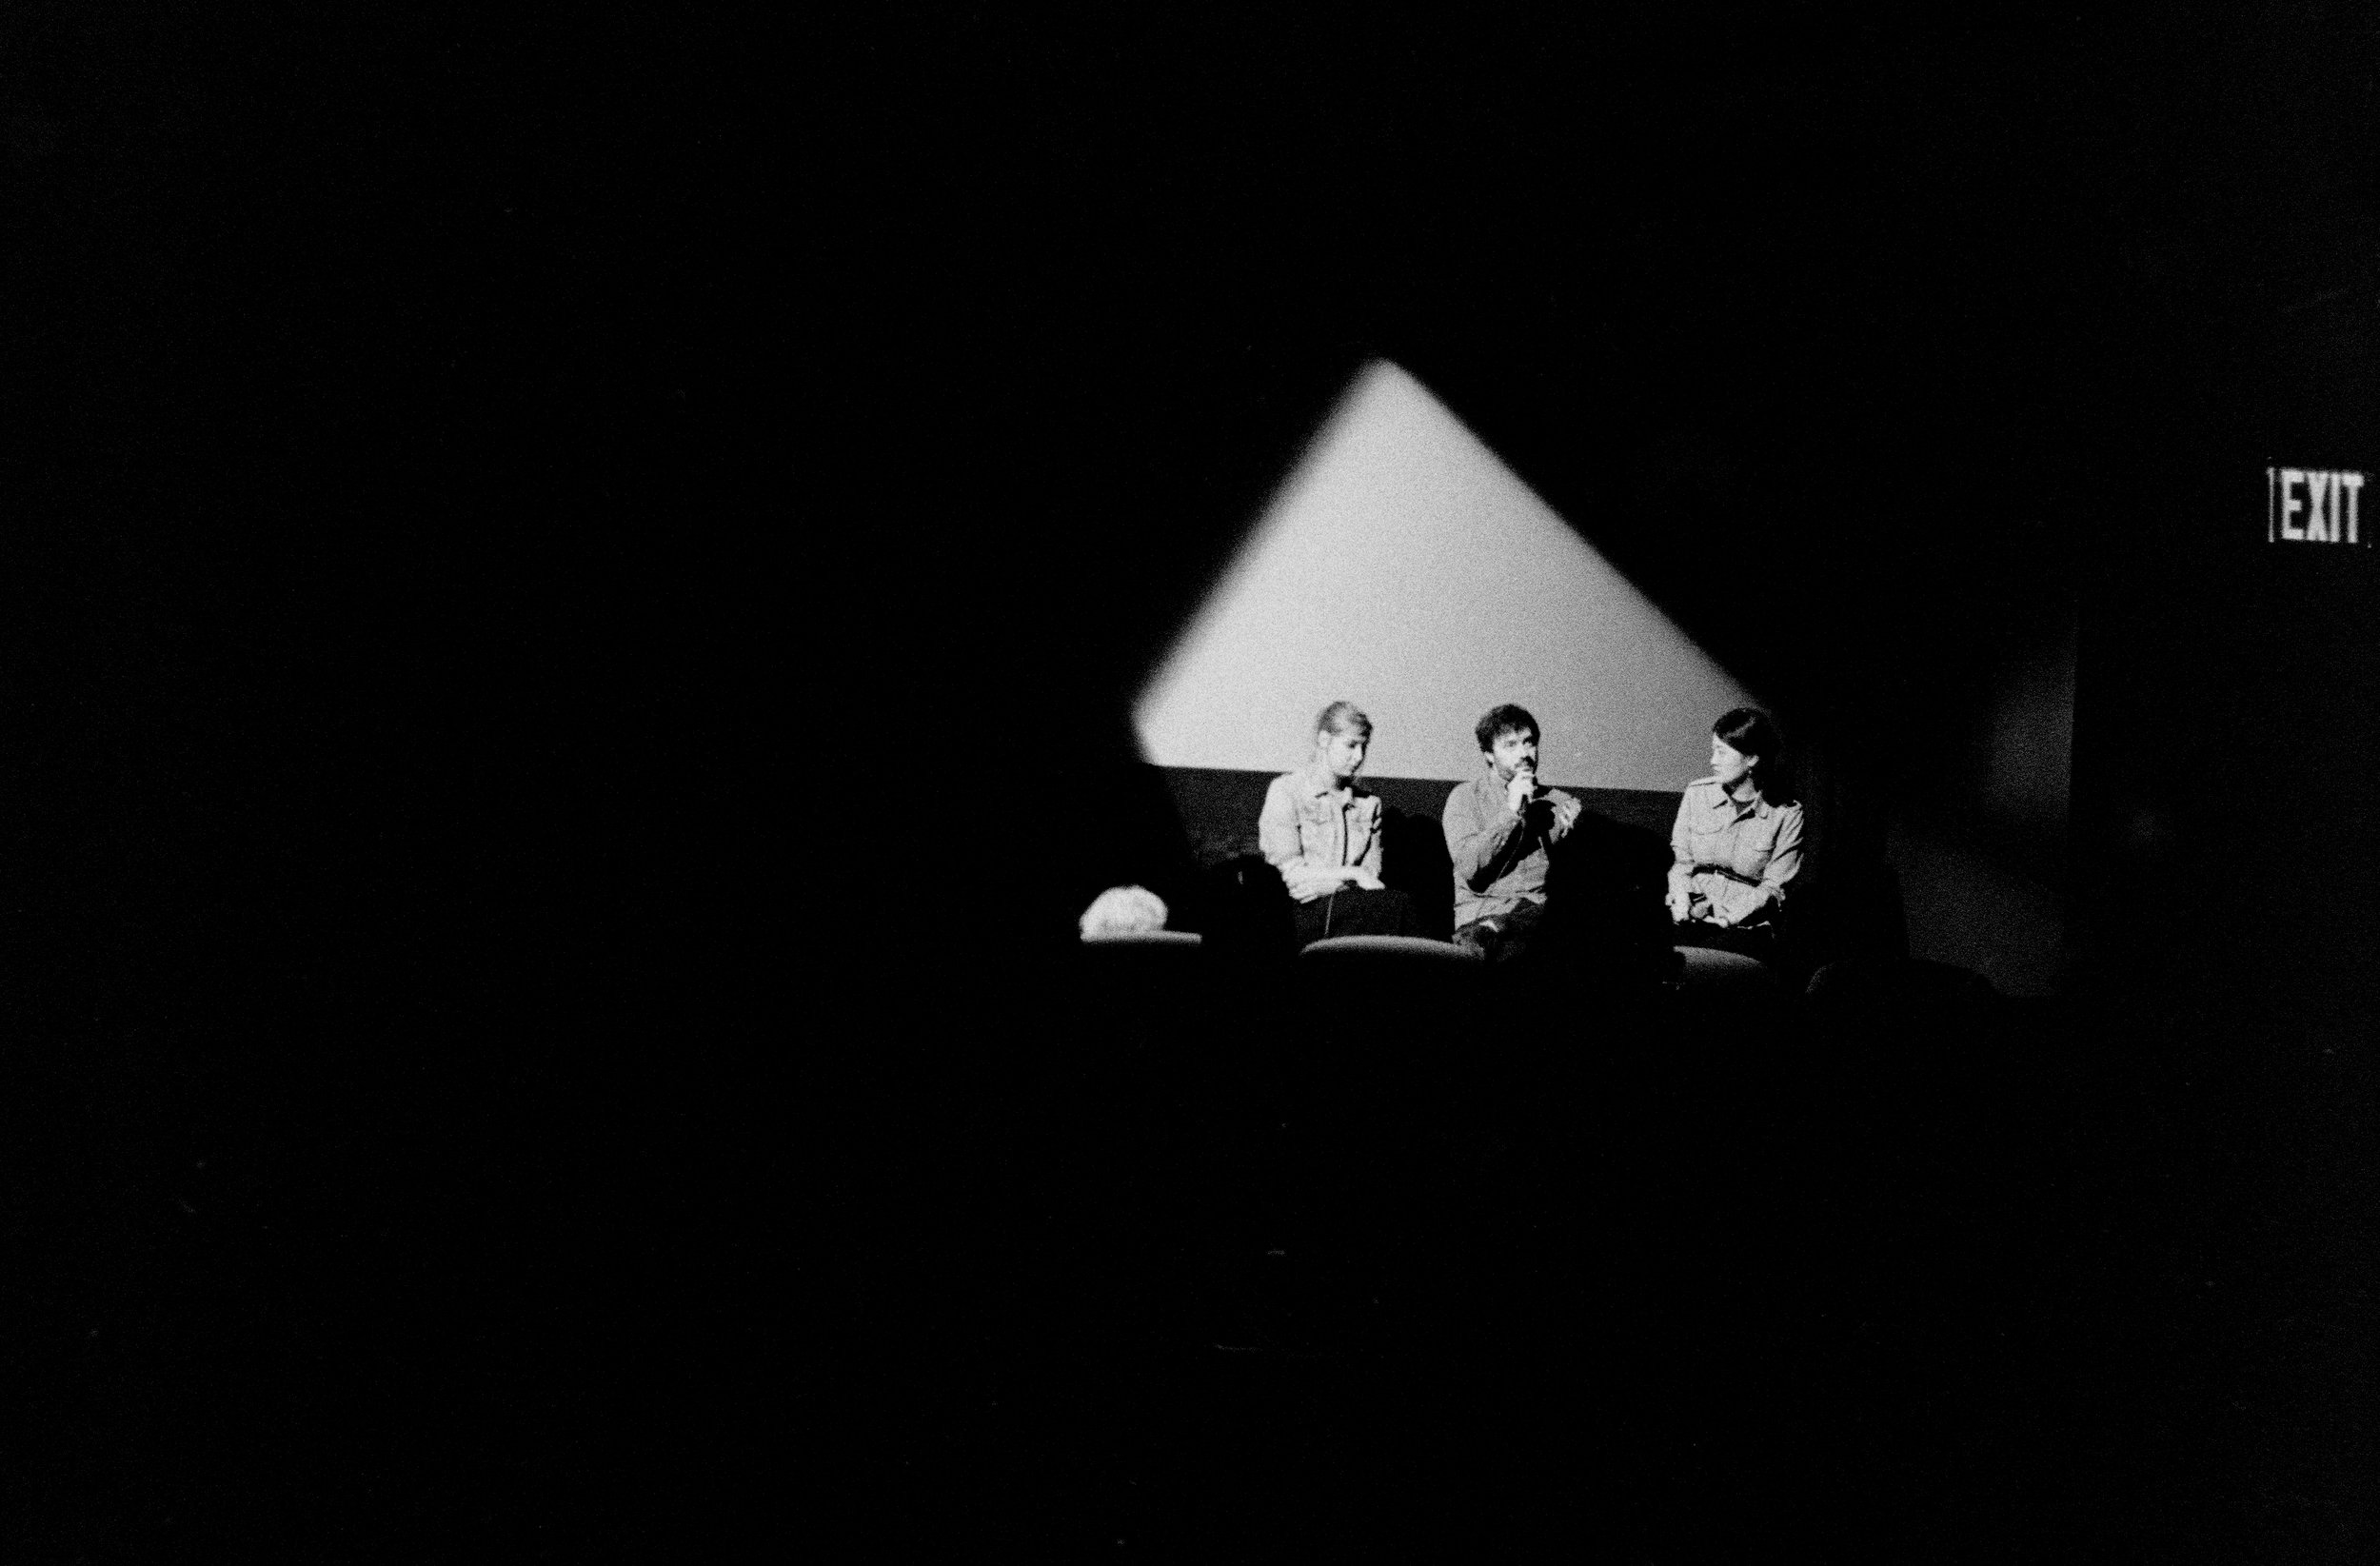 """Bisbee '17"" Q&A with Rob & Bennett at Film Forum"